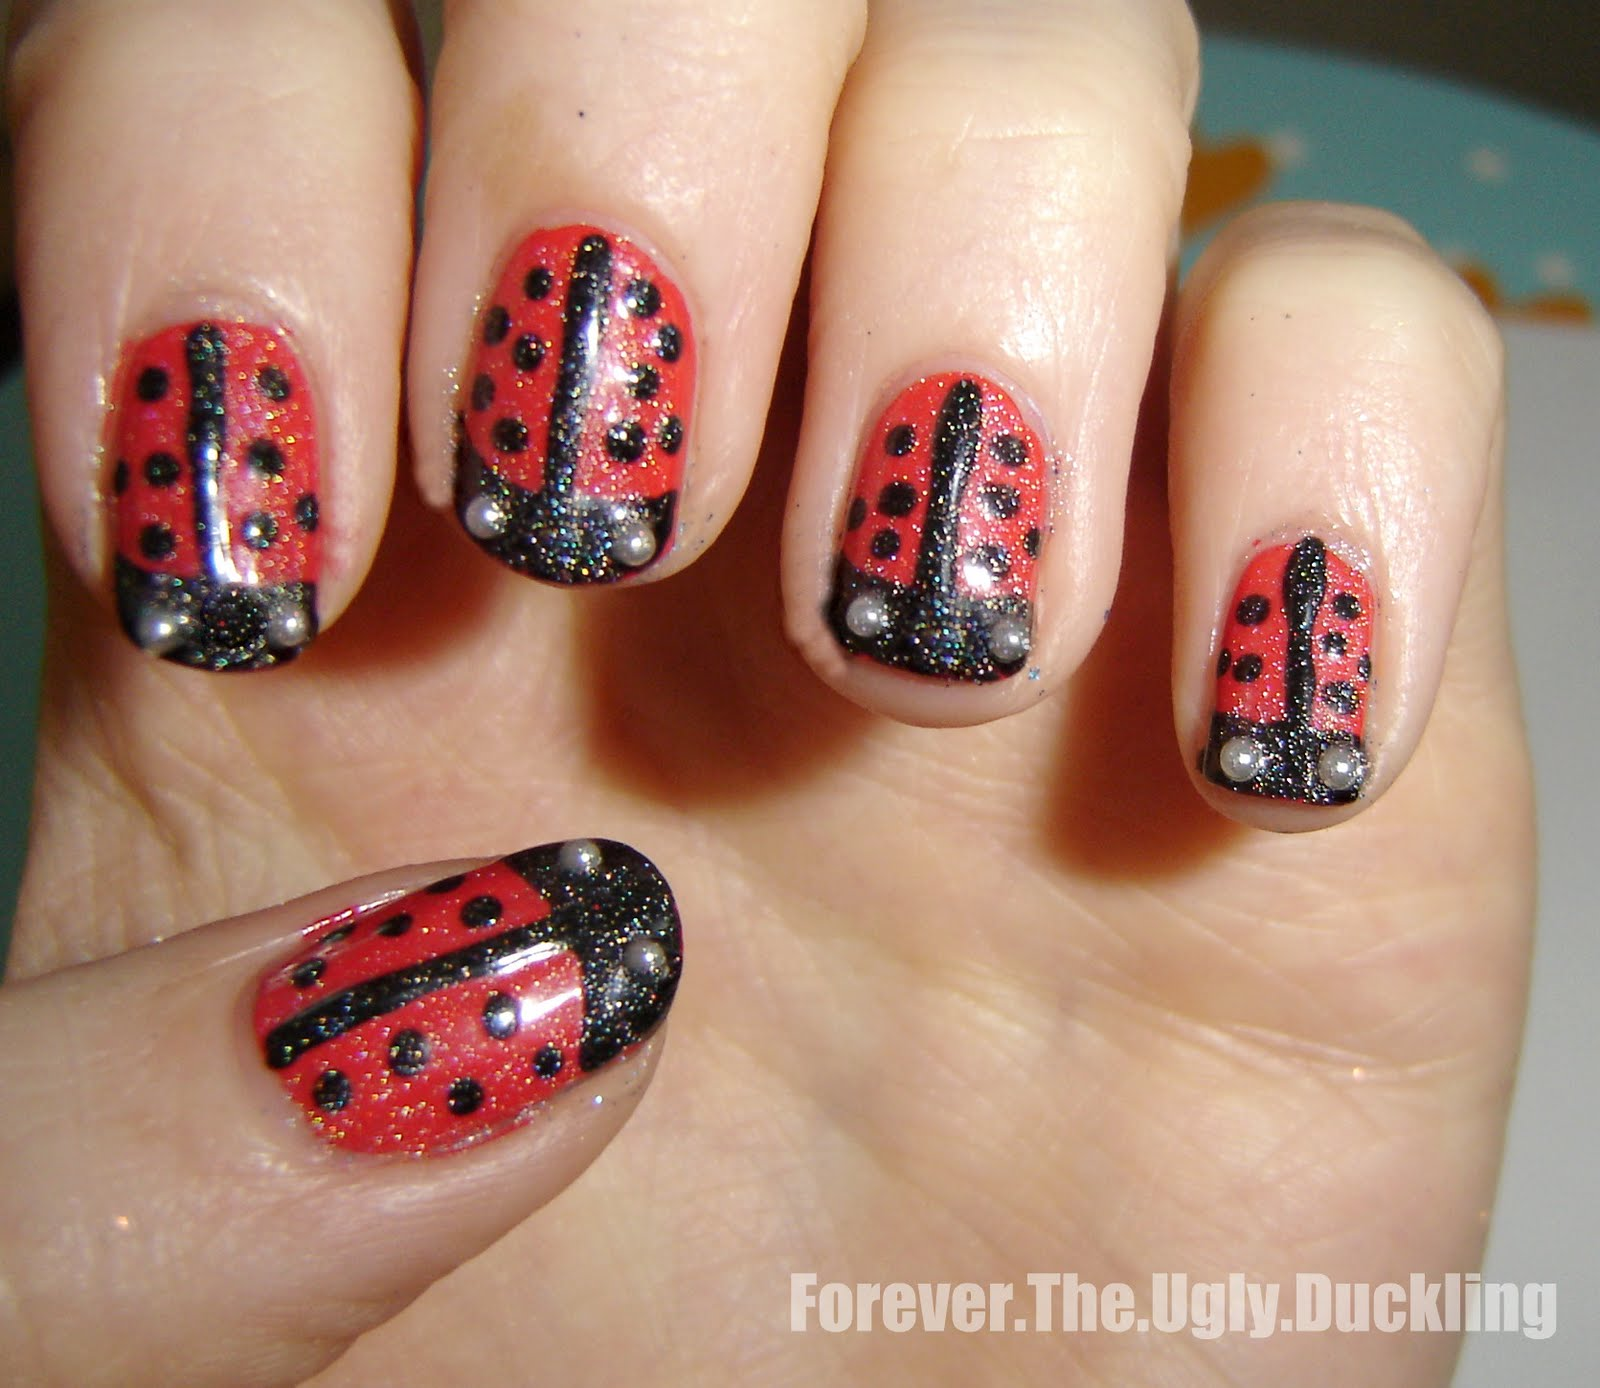 Forever the ugly duckling: NOTD: Ladybug Nails (Nail Art Pens)